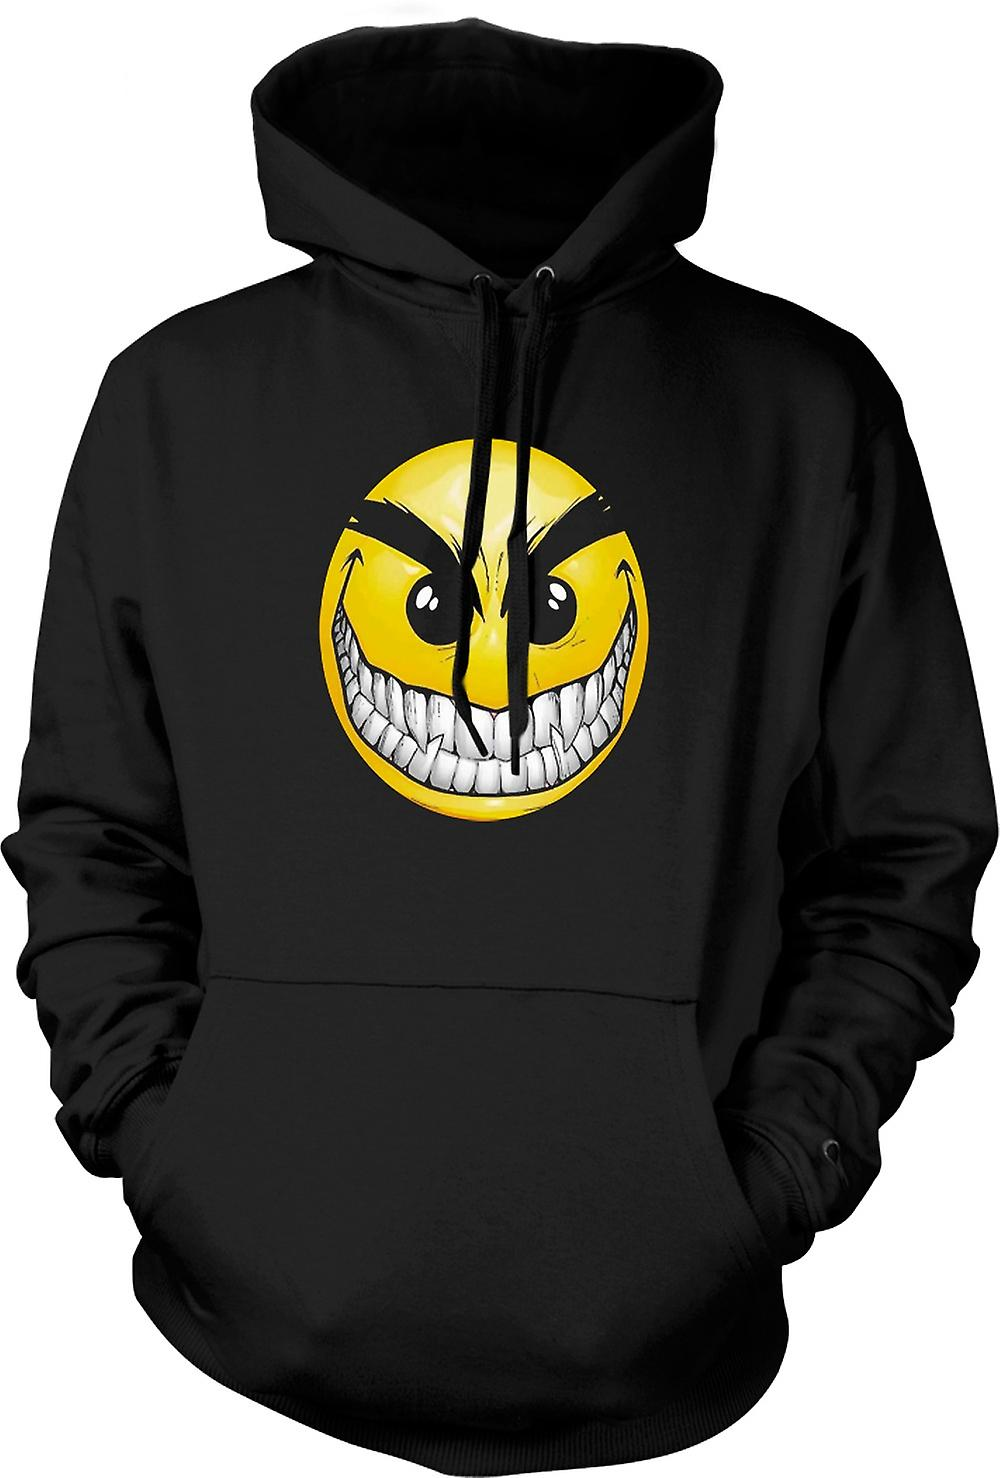 Kids Hoodie - Smiley Face - Teeth - Acid House